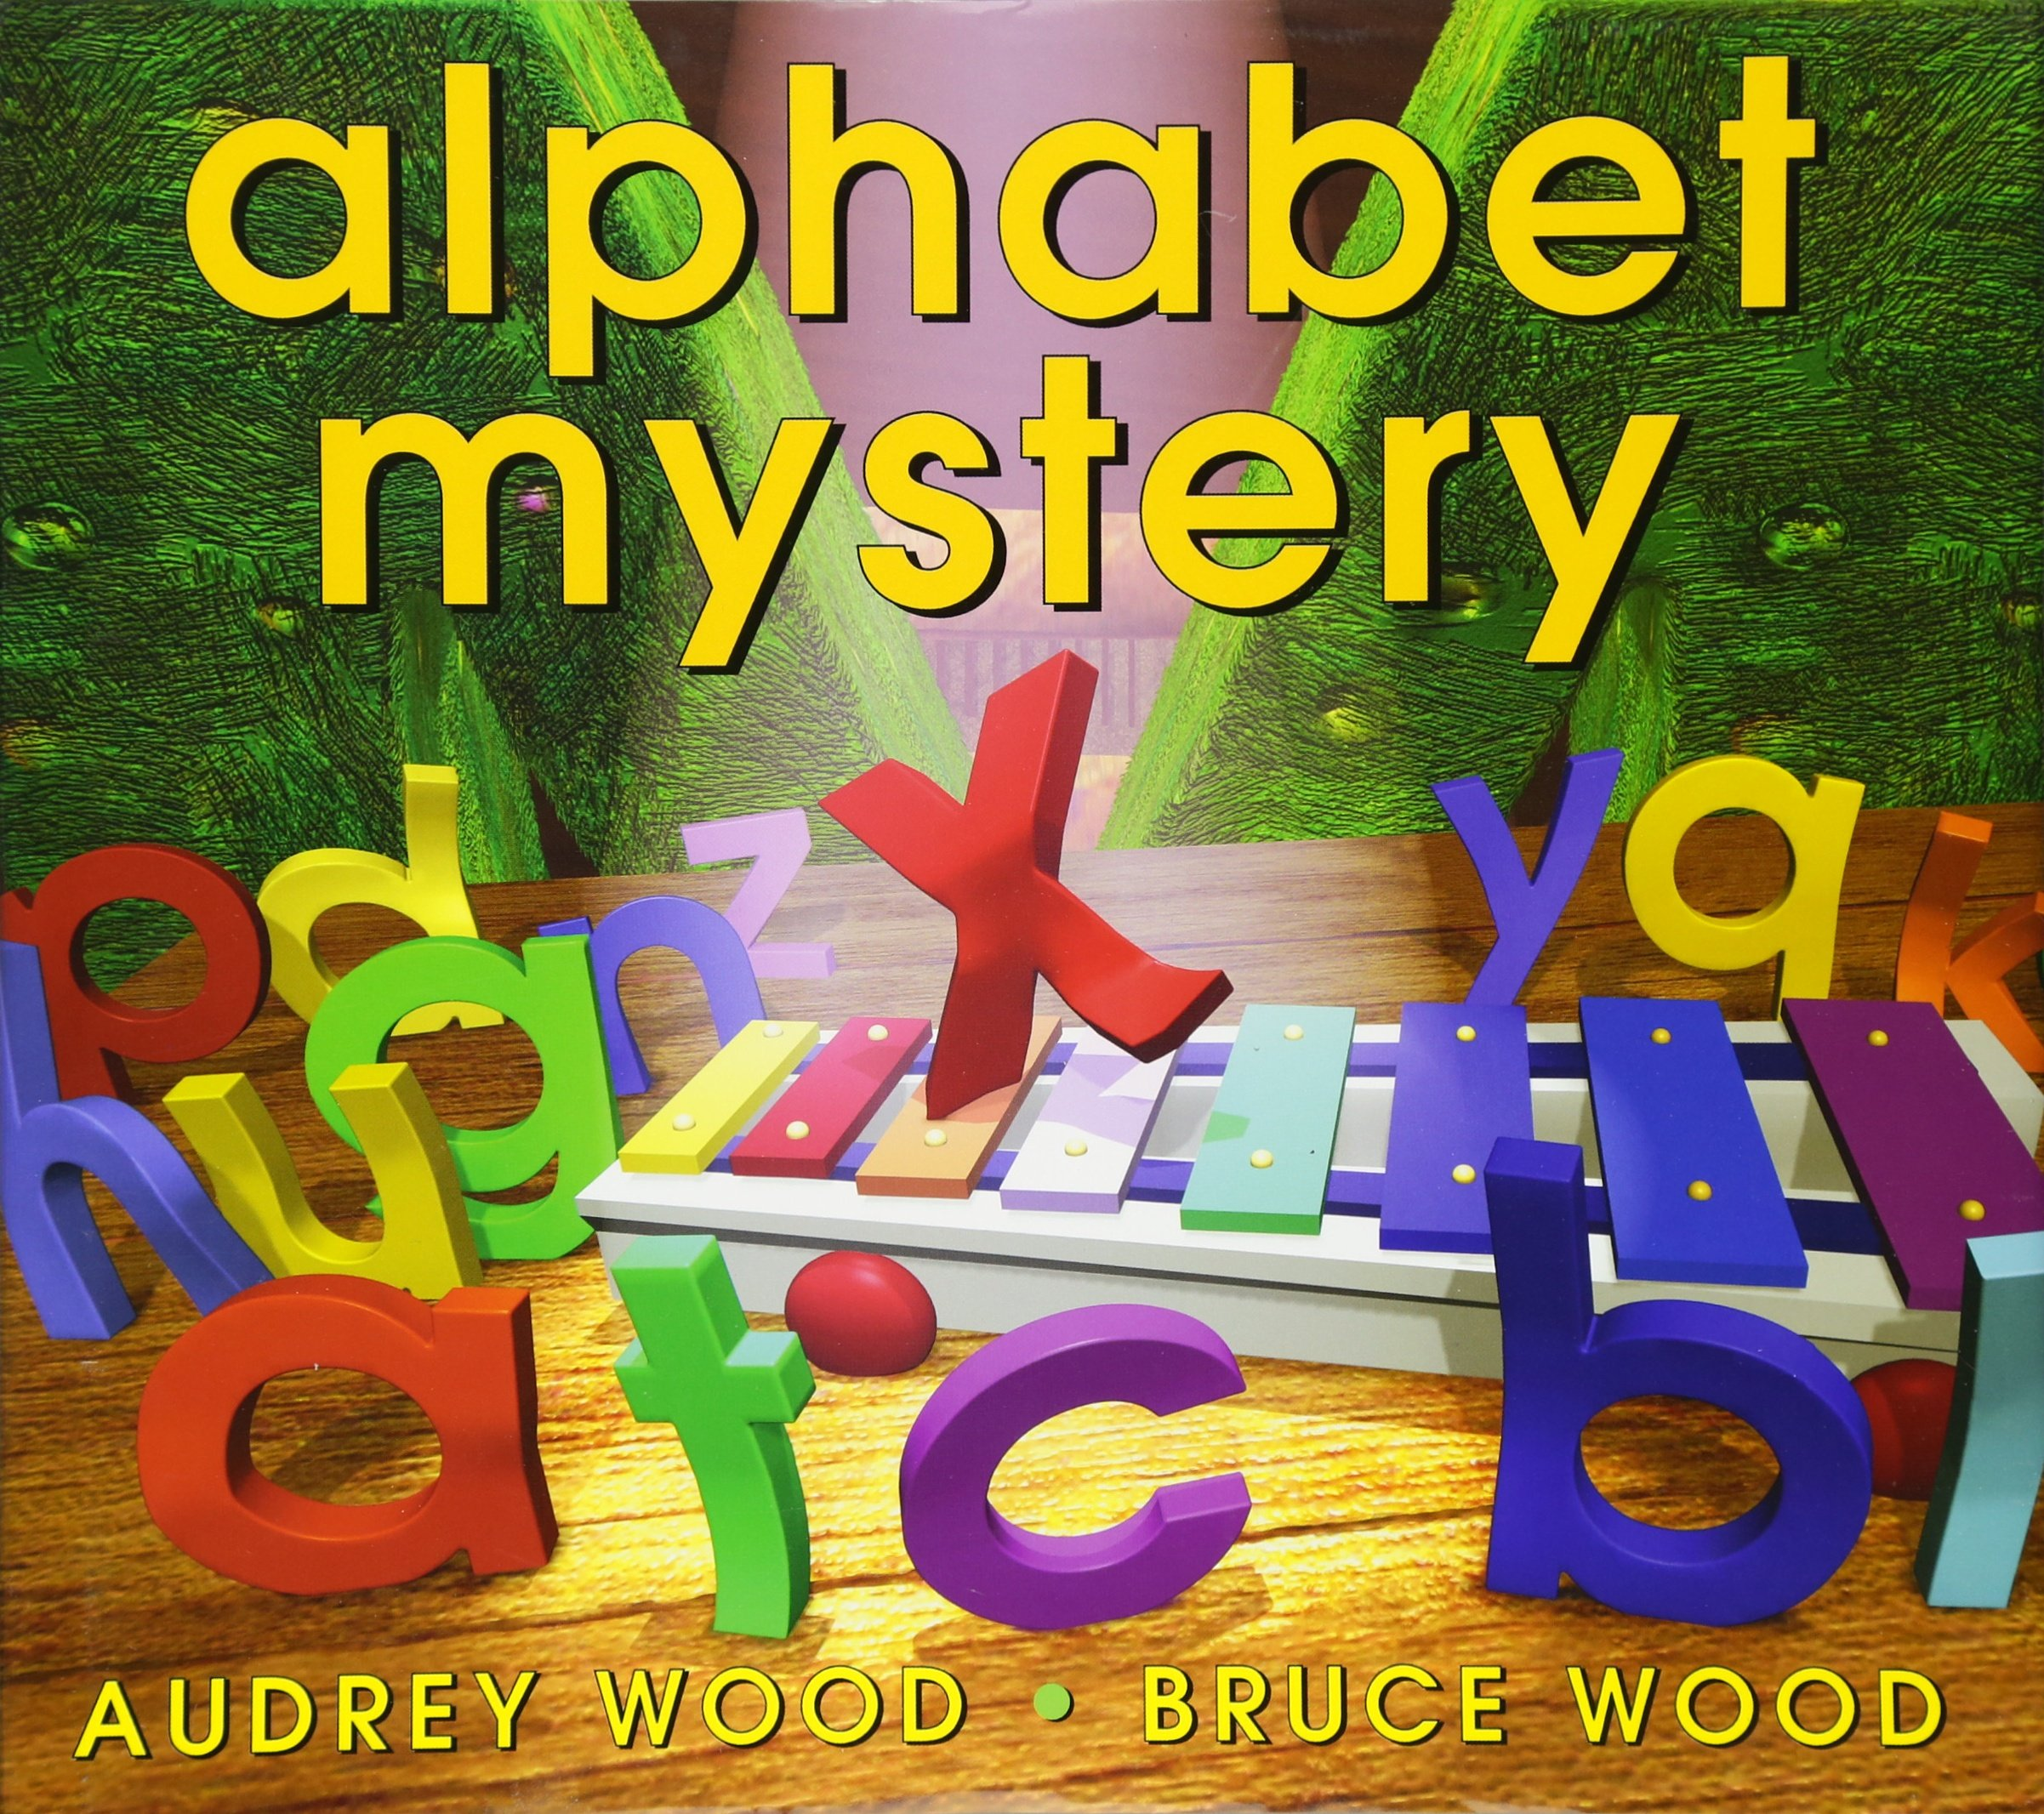 Amazon.com: Alphabet Mystery (9780439443371): Wood, Audrey, Wood, Audrey,  Wood, Bruce: Books